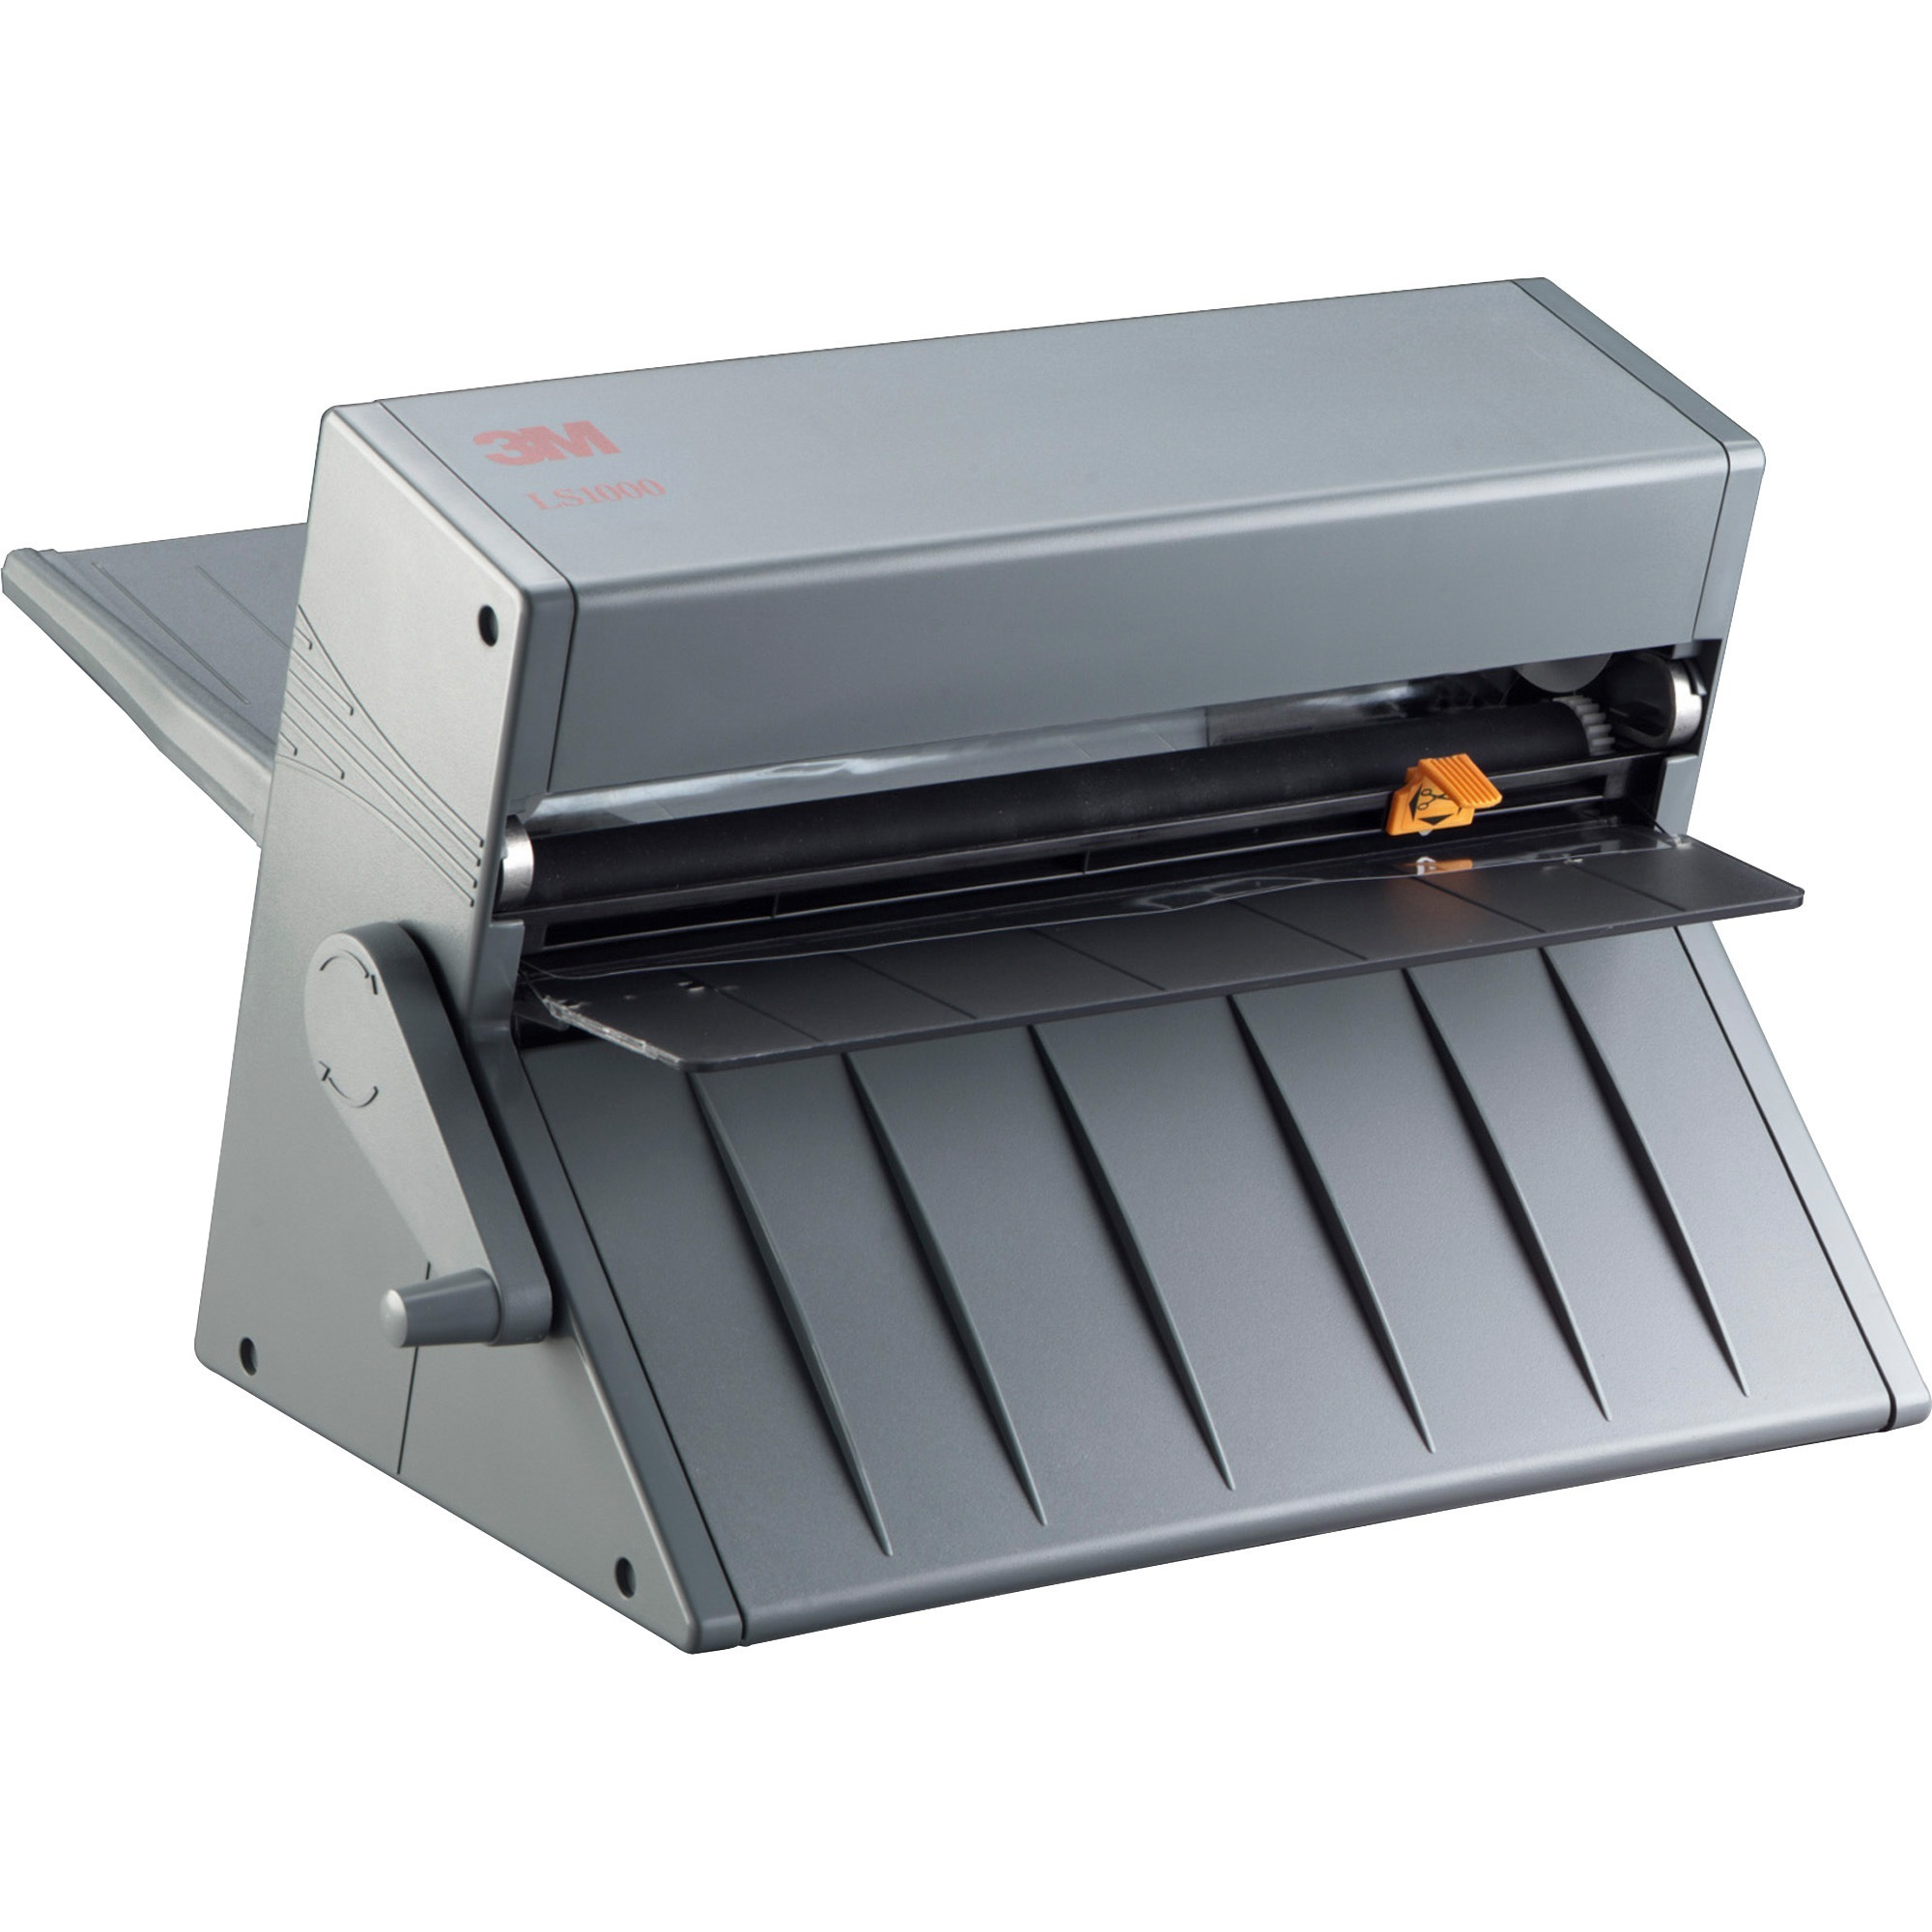 Scotch, MMMLS1000, Non-Electric Laminator, 1, Charcoal